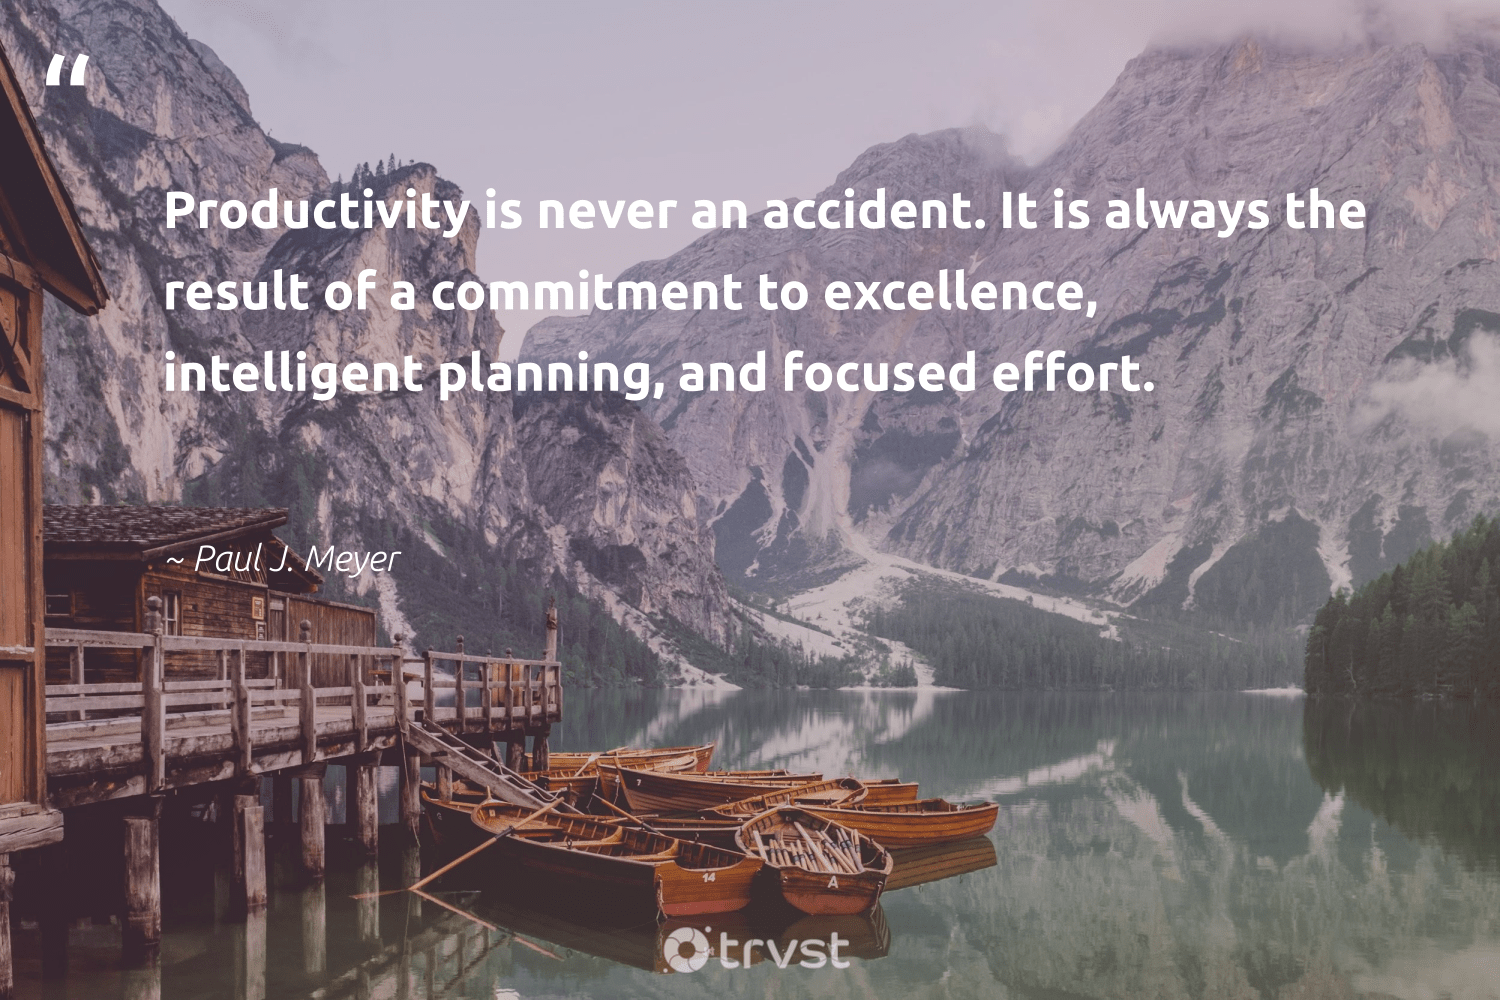 """""""Productivity is never an accident. It is always the result of a commitment to excellence, intelligent planning, and focused effort.""""  - Paul J. Meyer #trvst #quotes #productivity #productive #efficiencies #nevergiveup #bethechange #mostwontiwill #develop #begreat #changetheworld #motivation"""